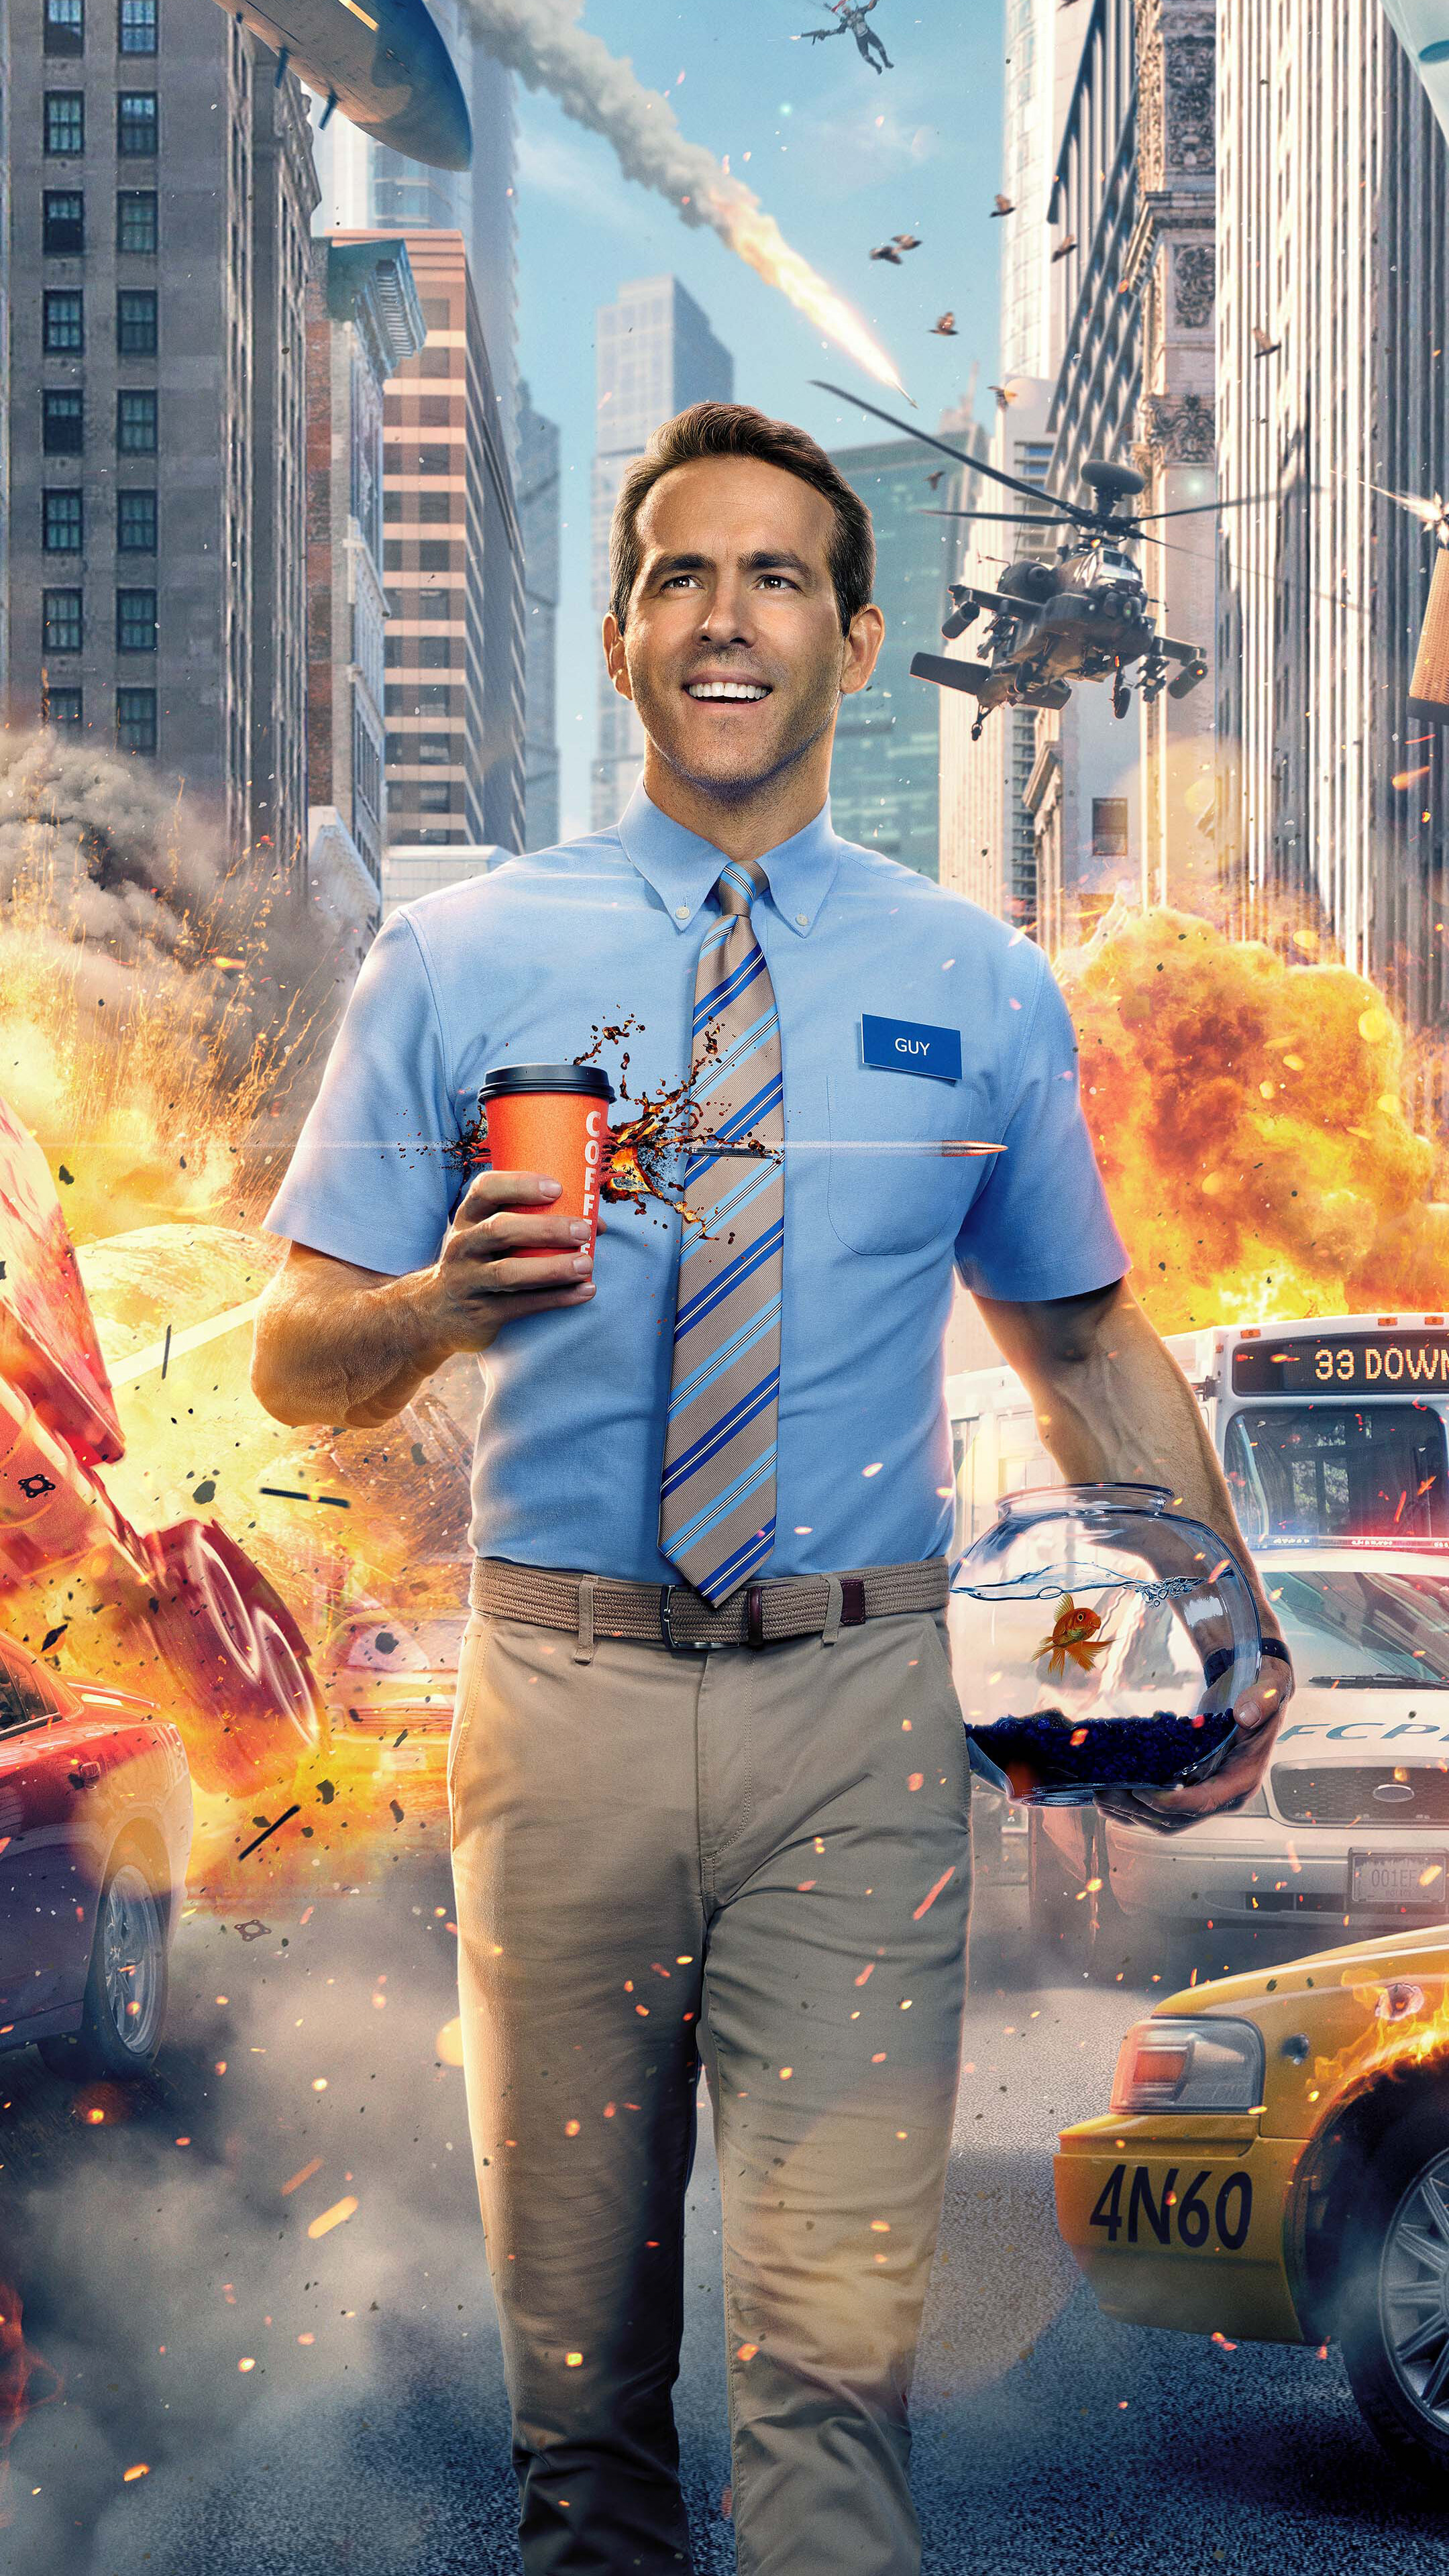 Guy Movie Poster Ryan Reynolds 4K Wallpaper 7623 2160x3840